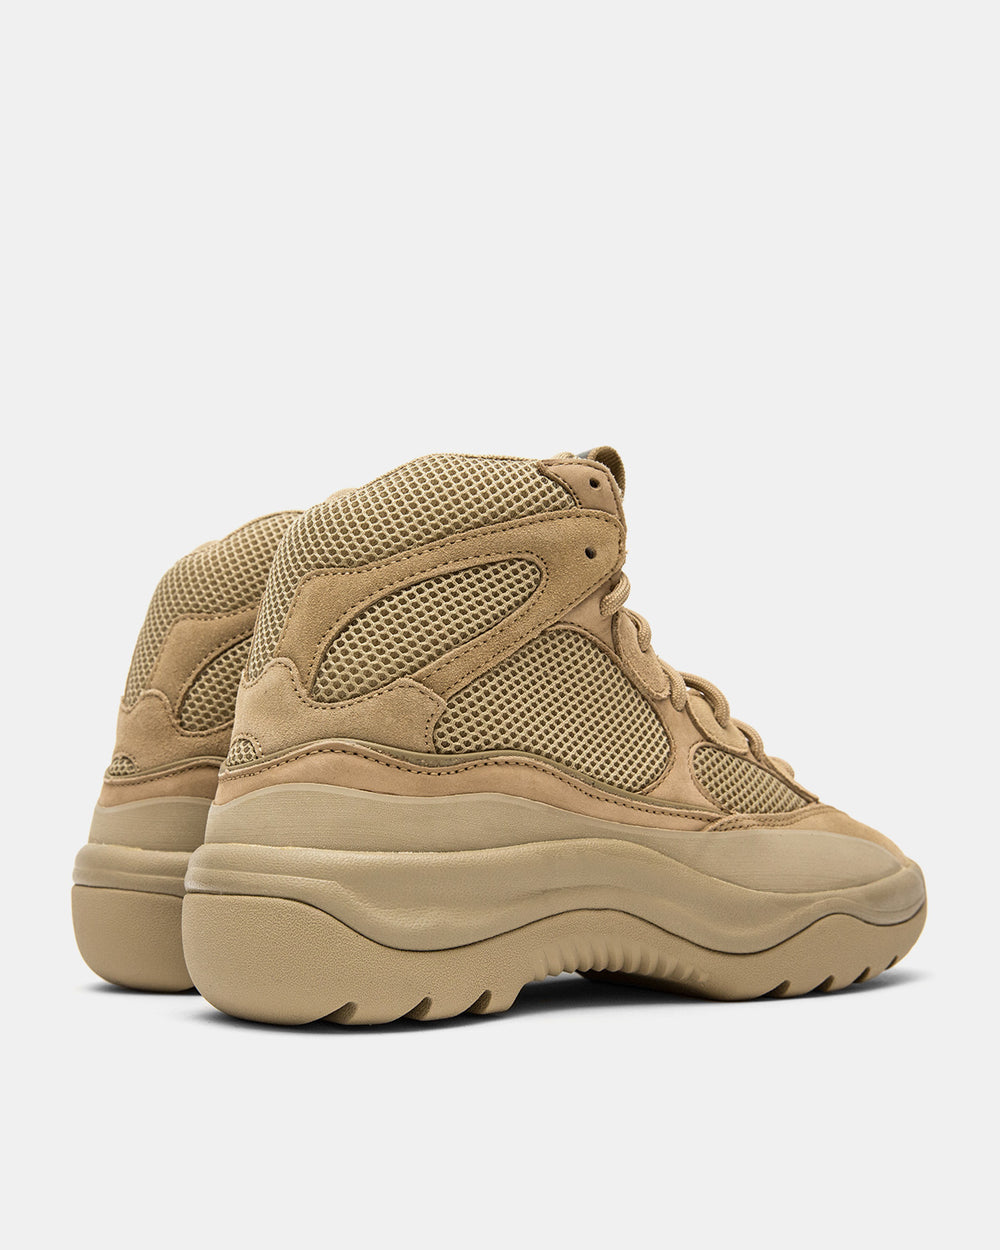 Yeezy - Yeezy Season 6 Thick Suede Desert Boot (Taupe)